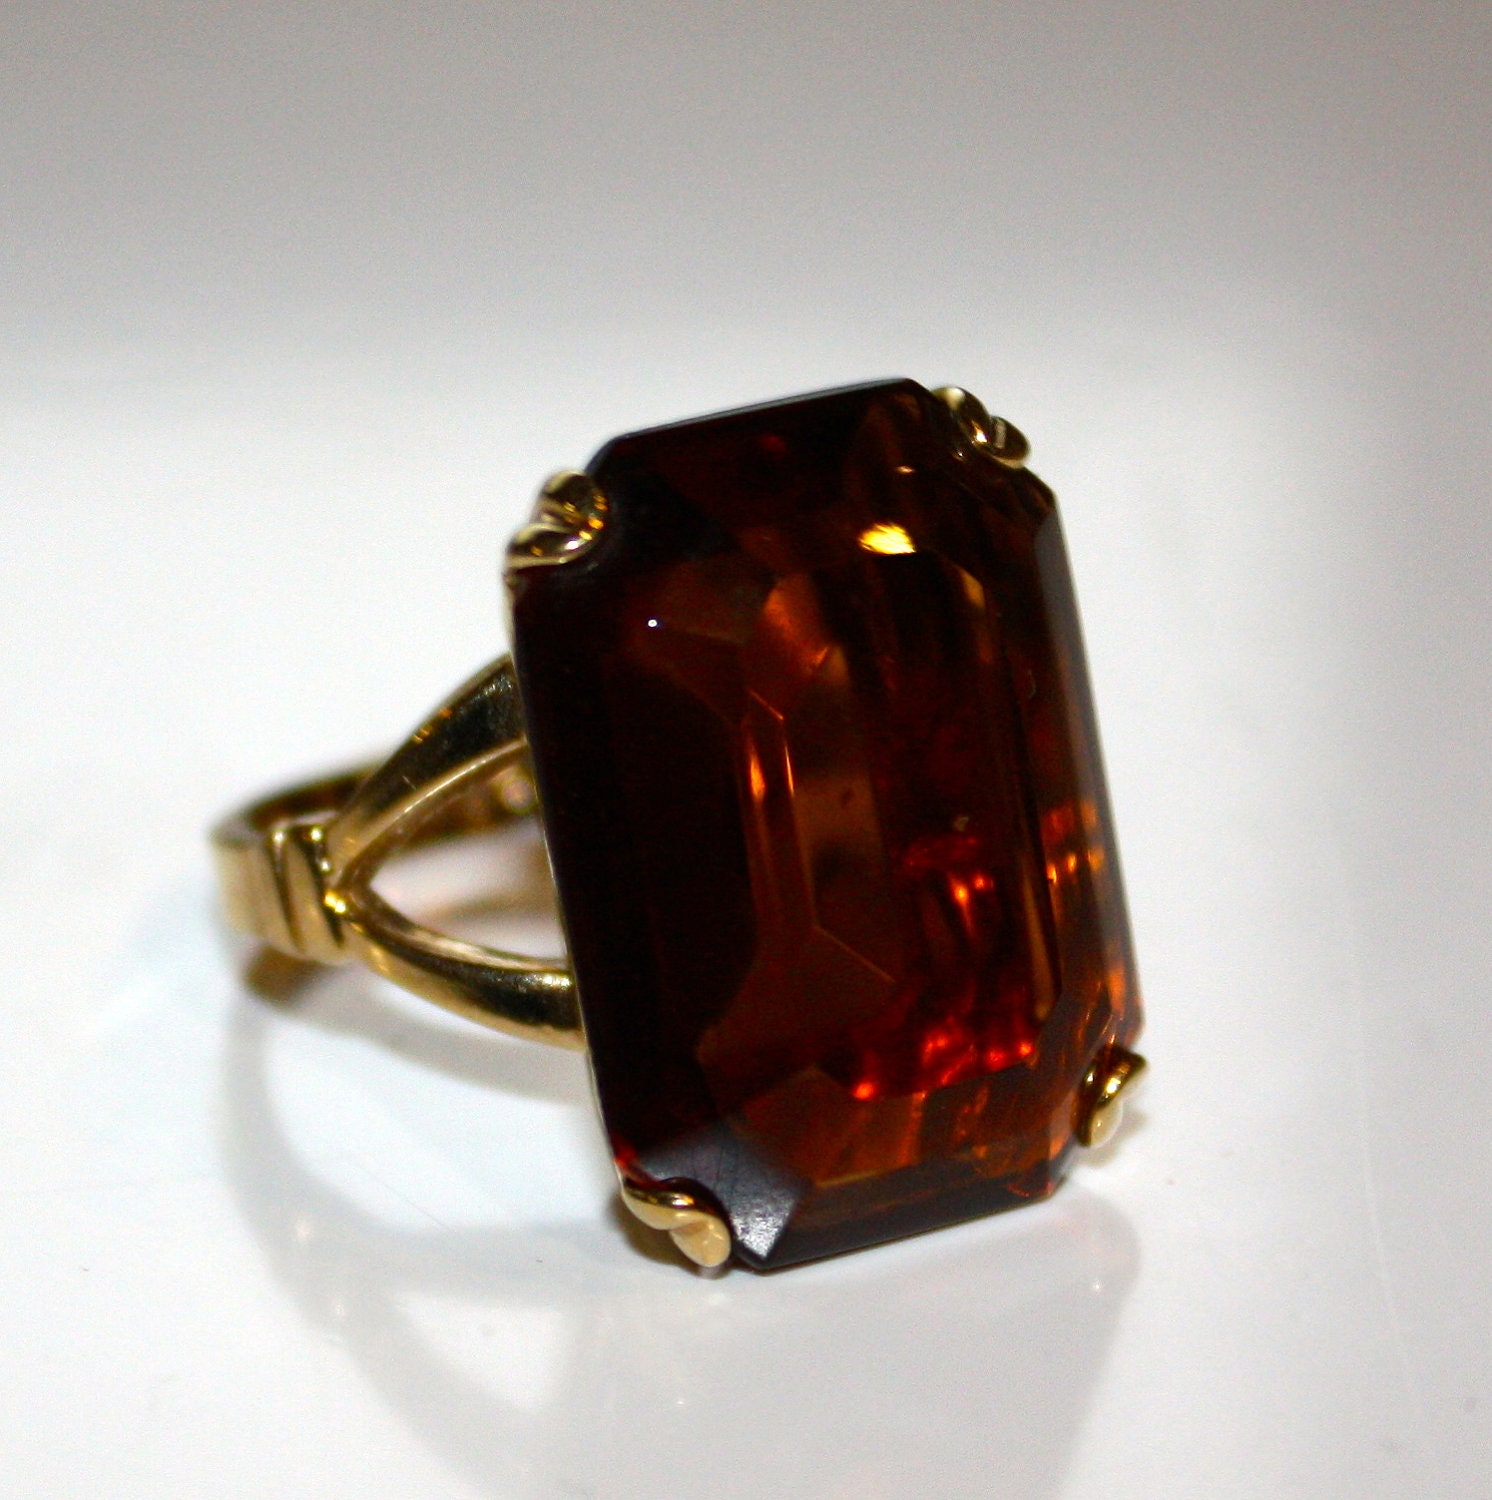 Avon Imperial Topaz Colored Gemstone Ring Size 5